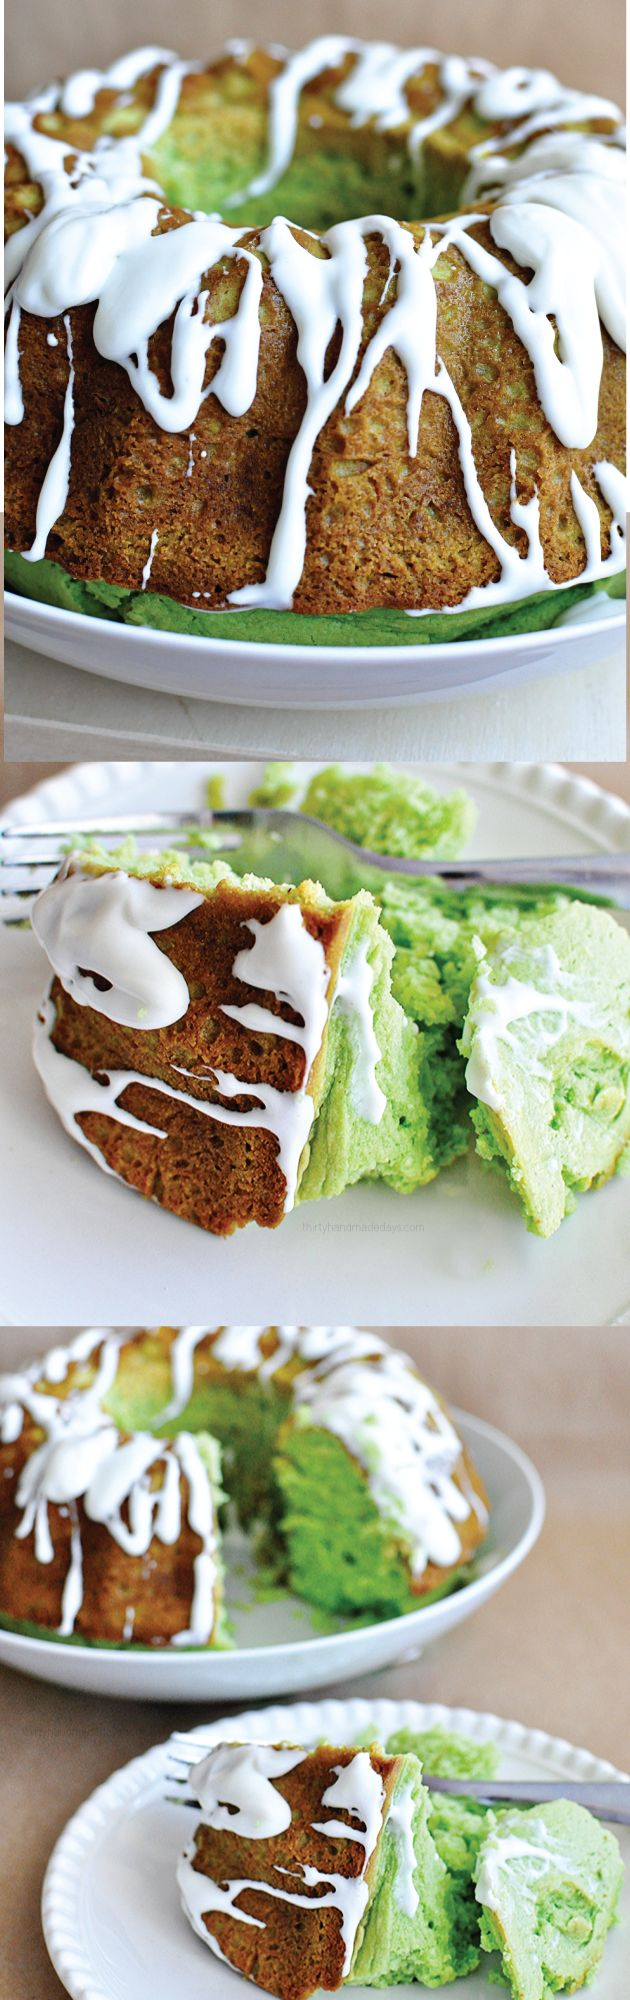 Light & fluffy Pistachio Bundt Cake with Cream Cheese Frosting Glaze using a boxed cake mix.  Easy to make and so good!